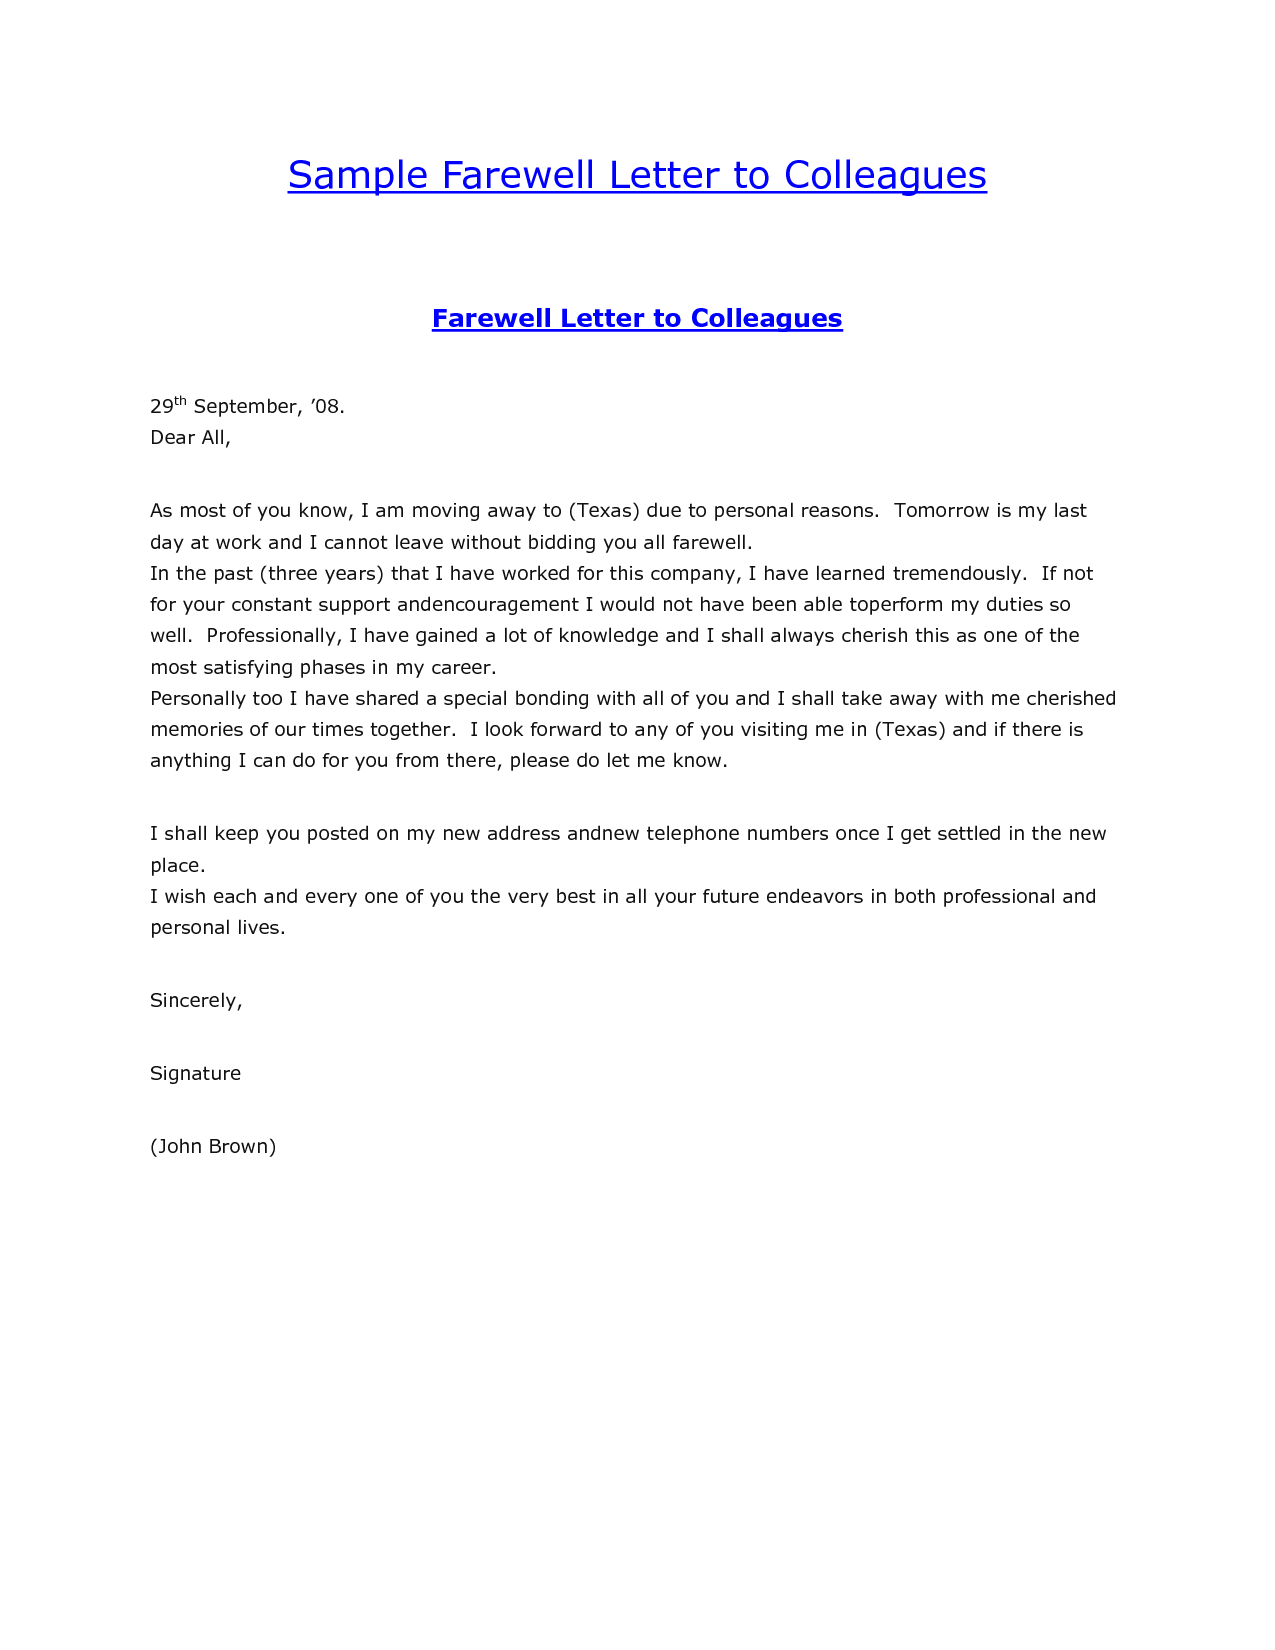 Sample Farewell Letter To ColleaguesGoodbye Letter Formal letter